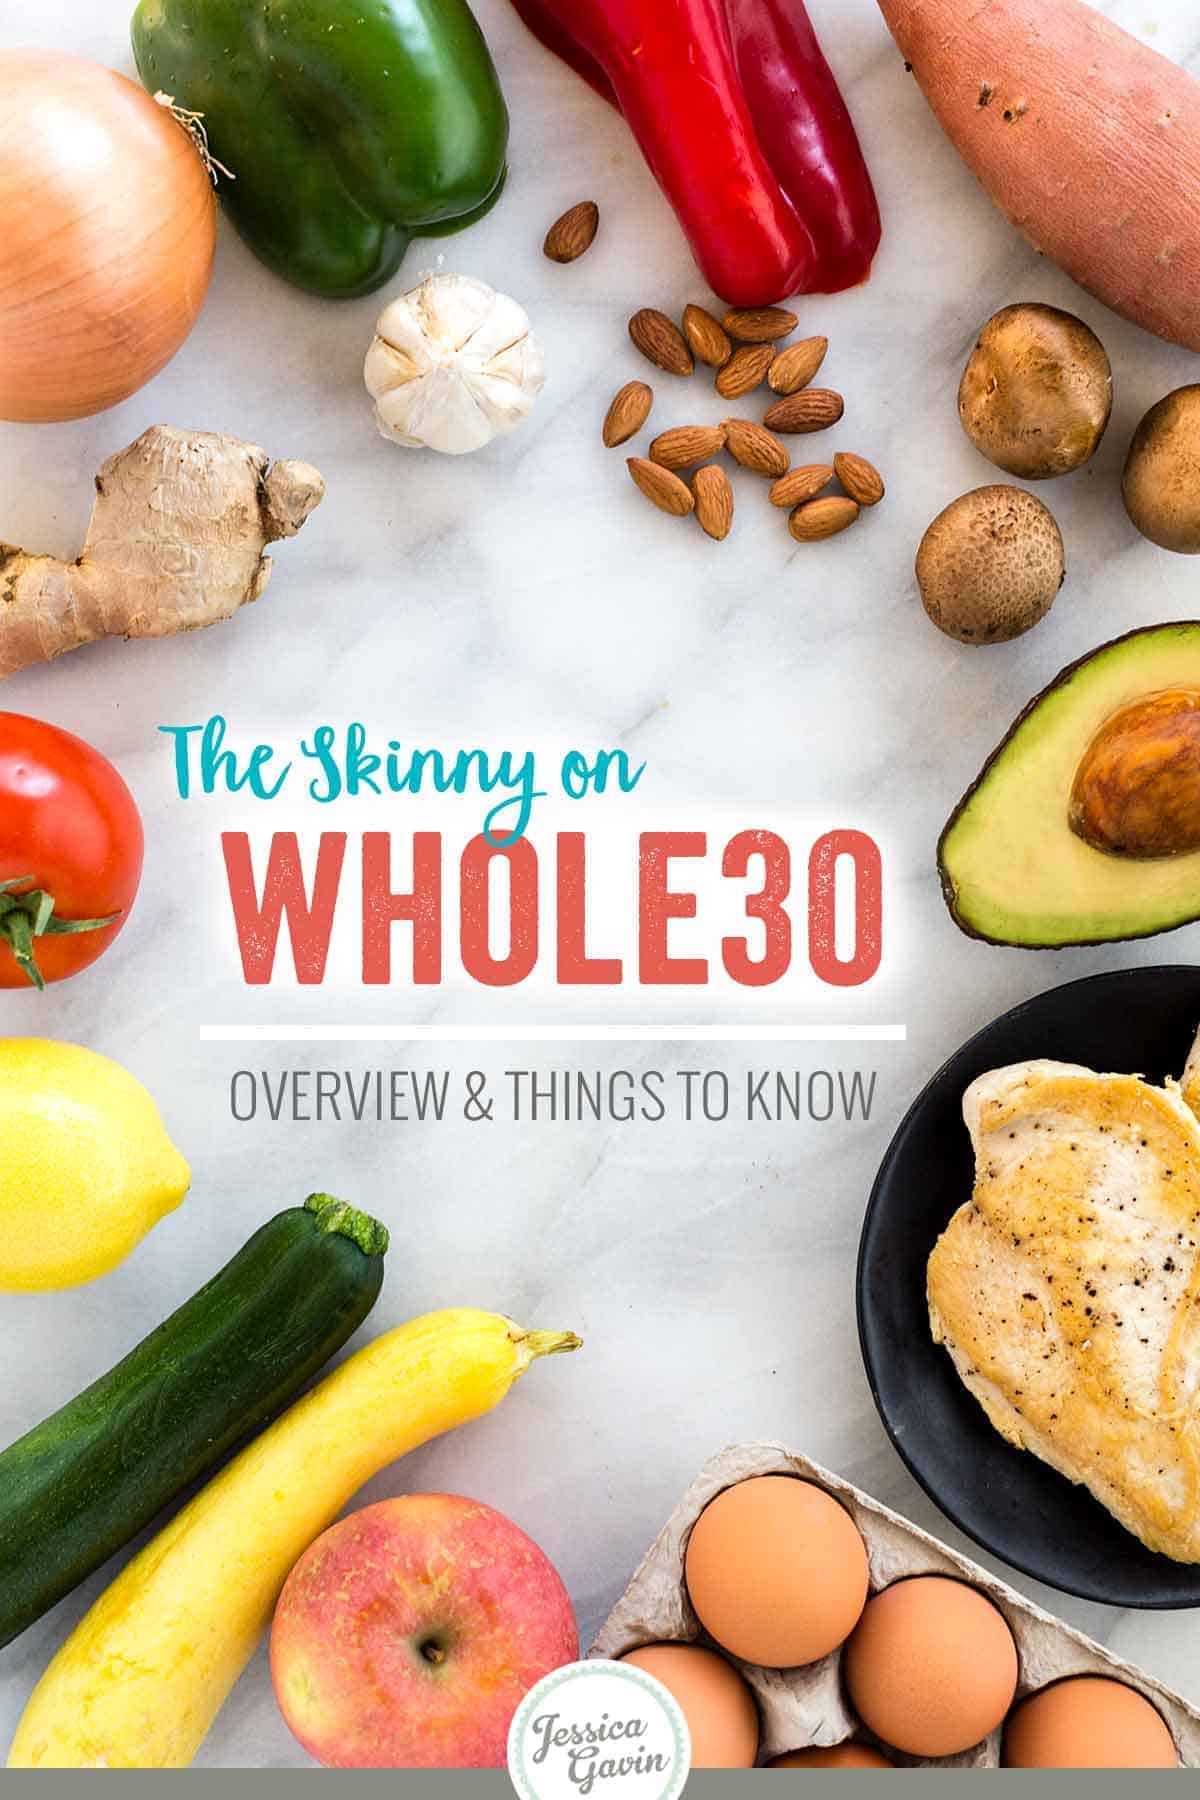 Learn about the whole30 diet: what it is, foods you can eat, the ones you should avoid, and recipes to try. This program is a strict, short-term 30-day elimination diet for nutrition reset. #whole30 #diet #healthyeating